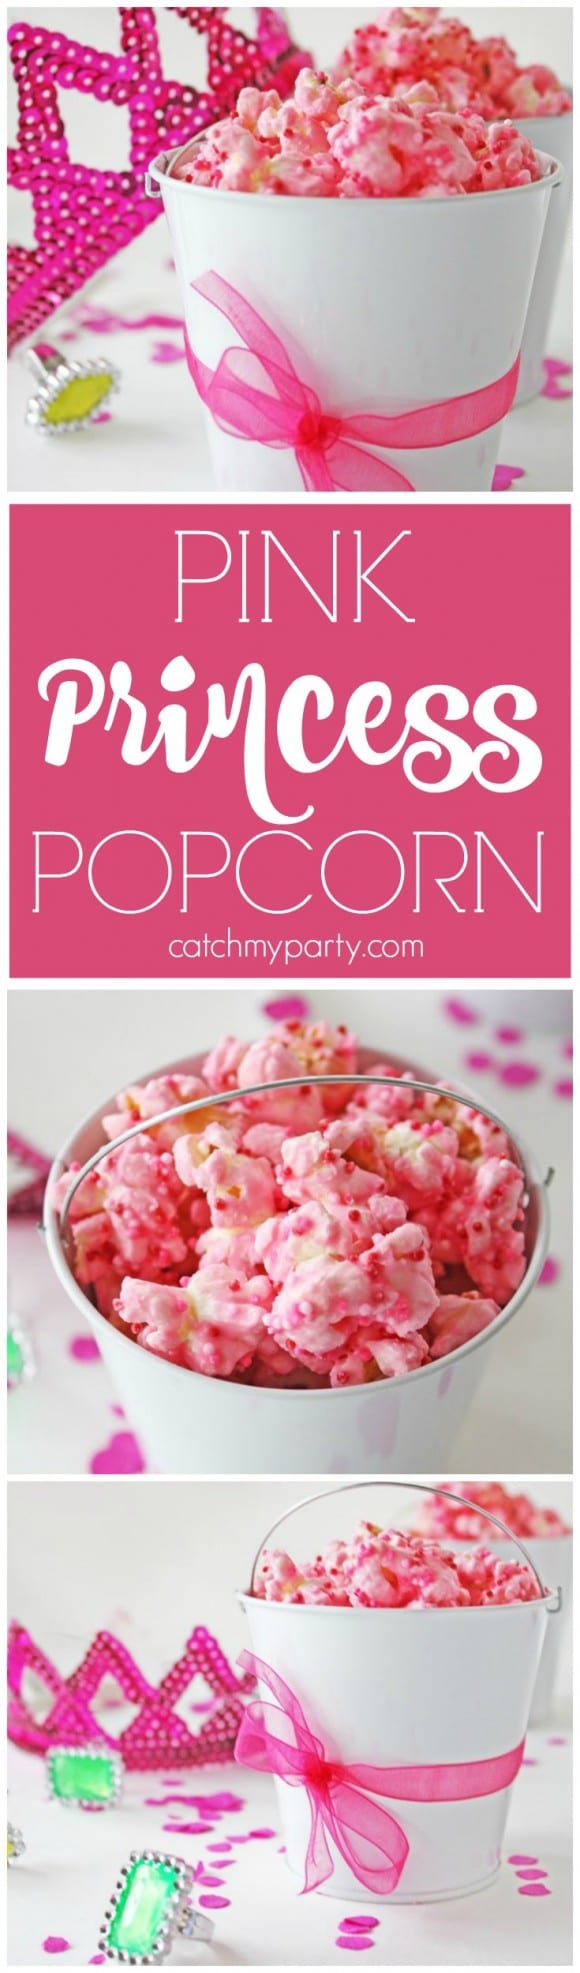 Pink princess popcorn | CatchMyParty.com